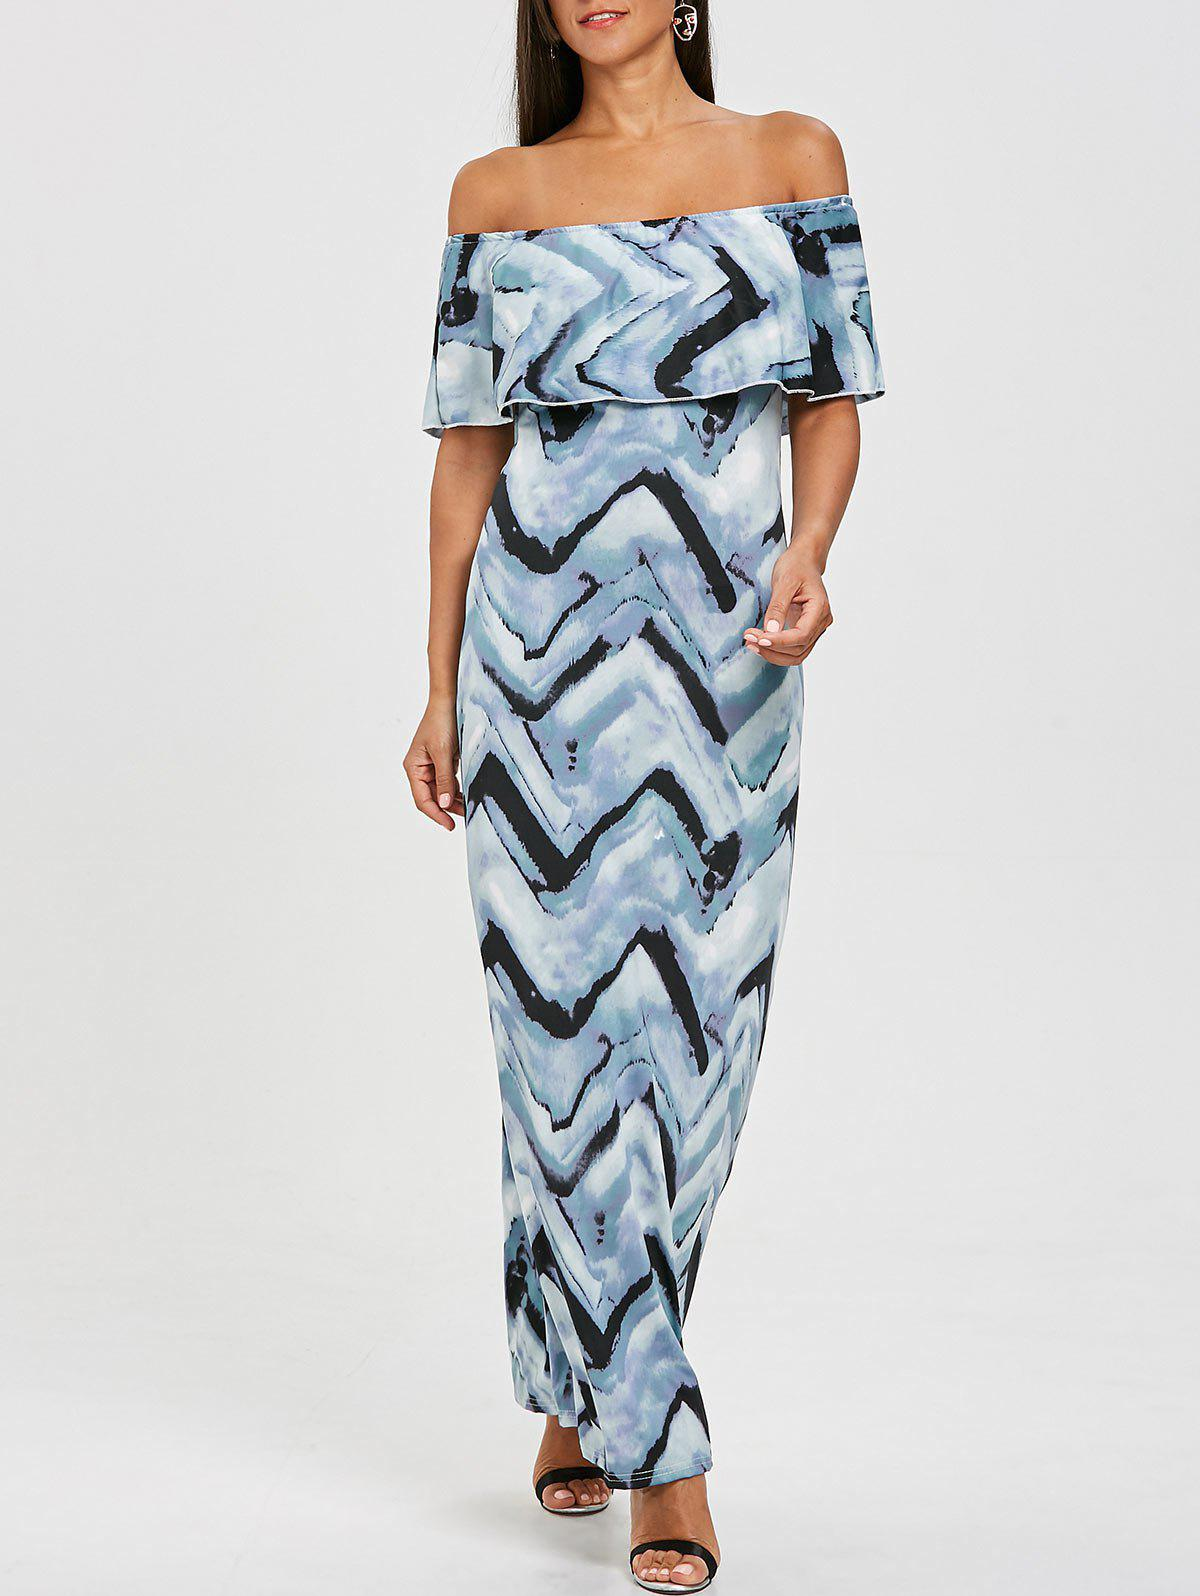 Ruffle Zigzag Off The Shoulder Maxi Dress - COLORMIX 2XL